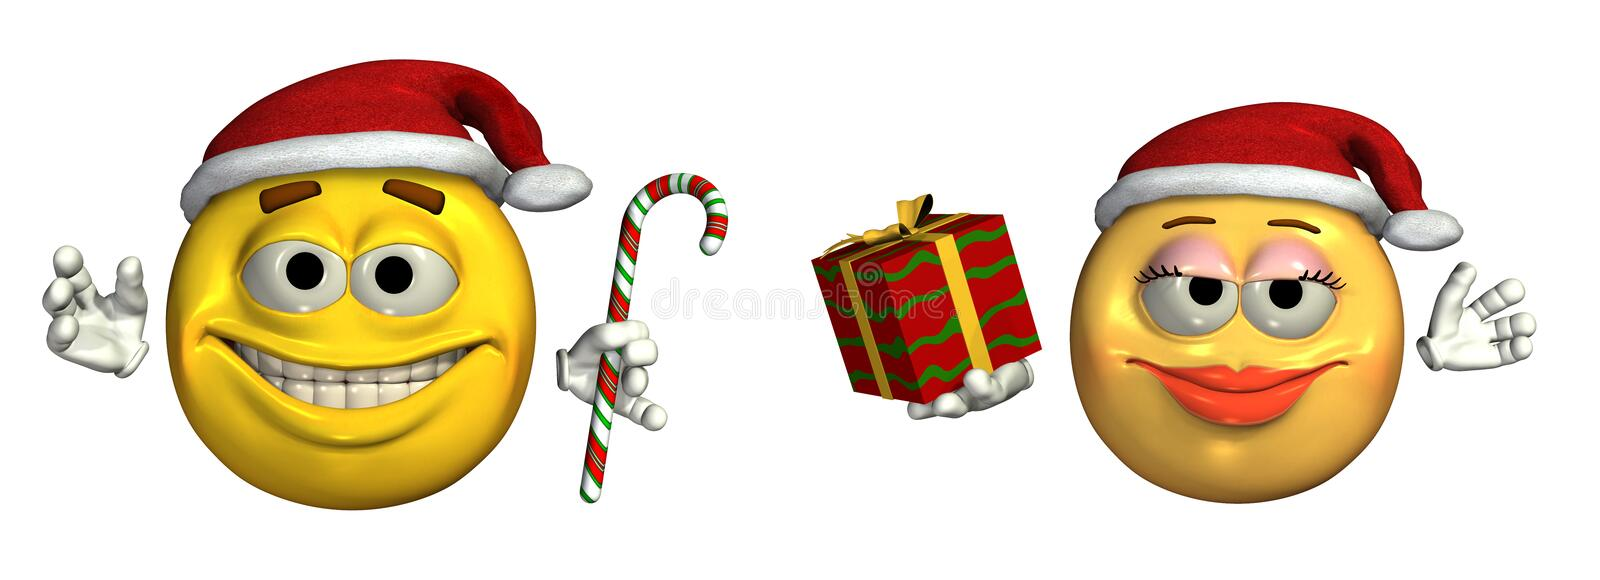 Big Christmas Emoticons - includes clipping path royalty free illustration